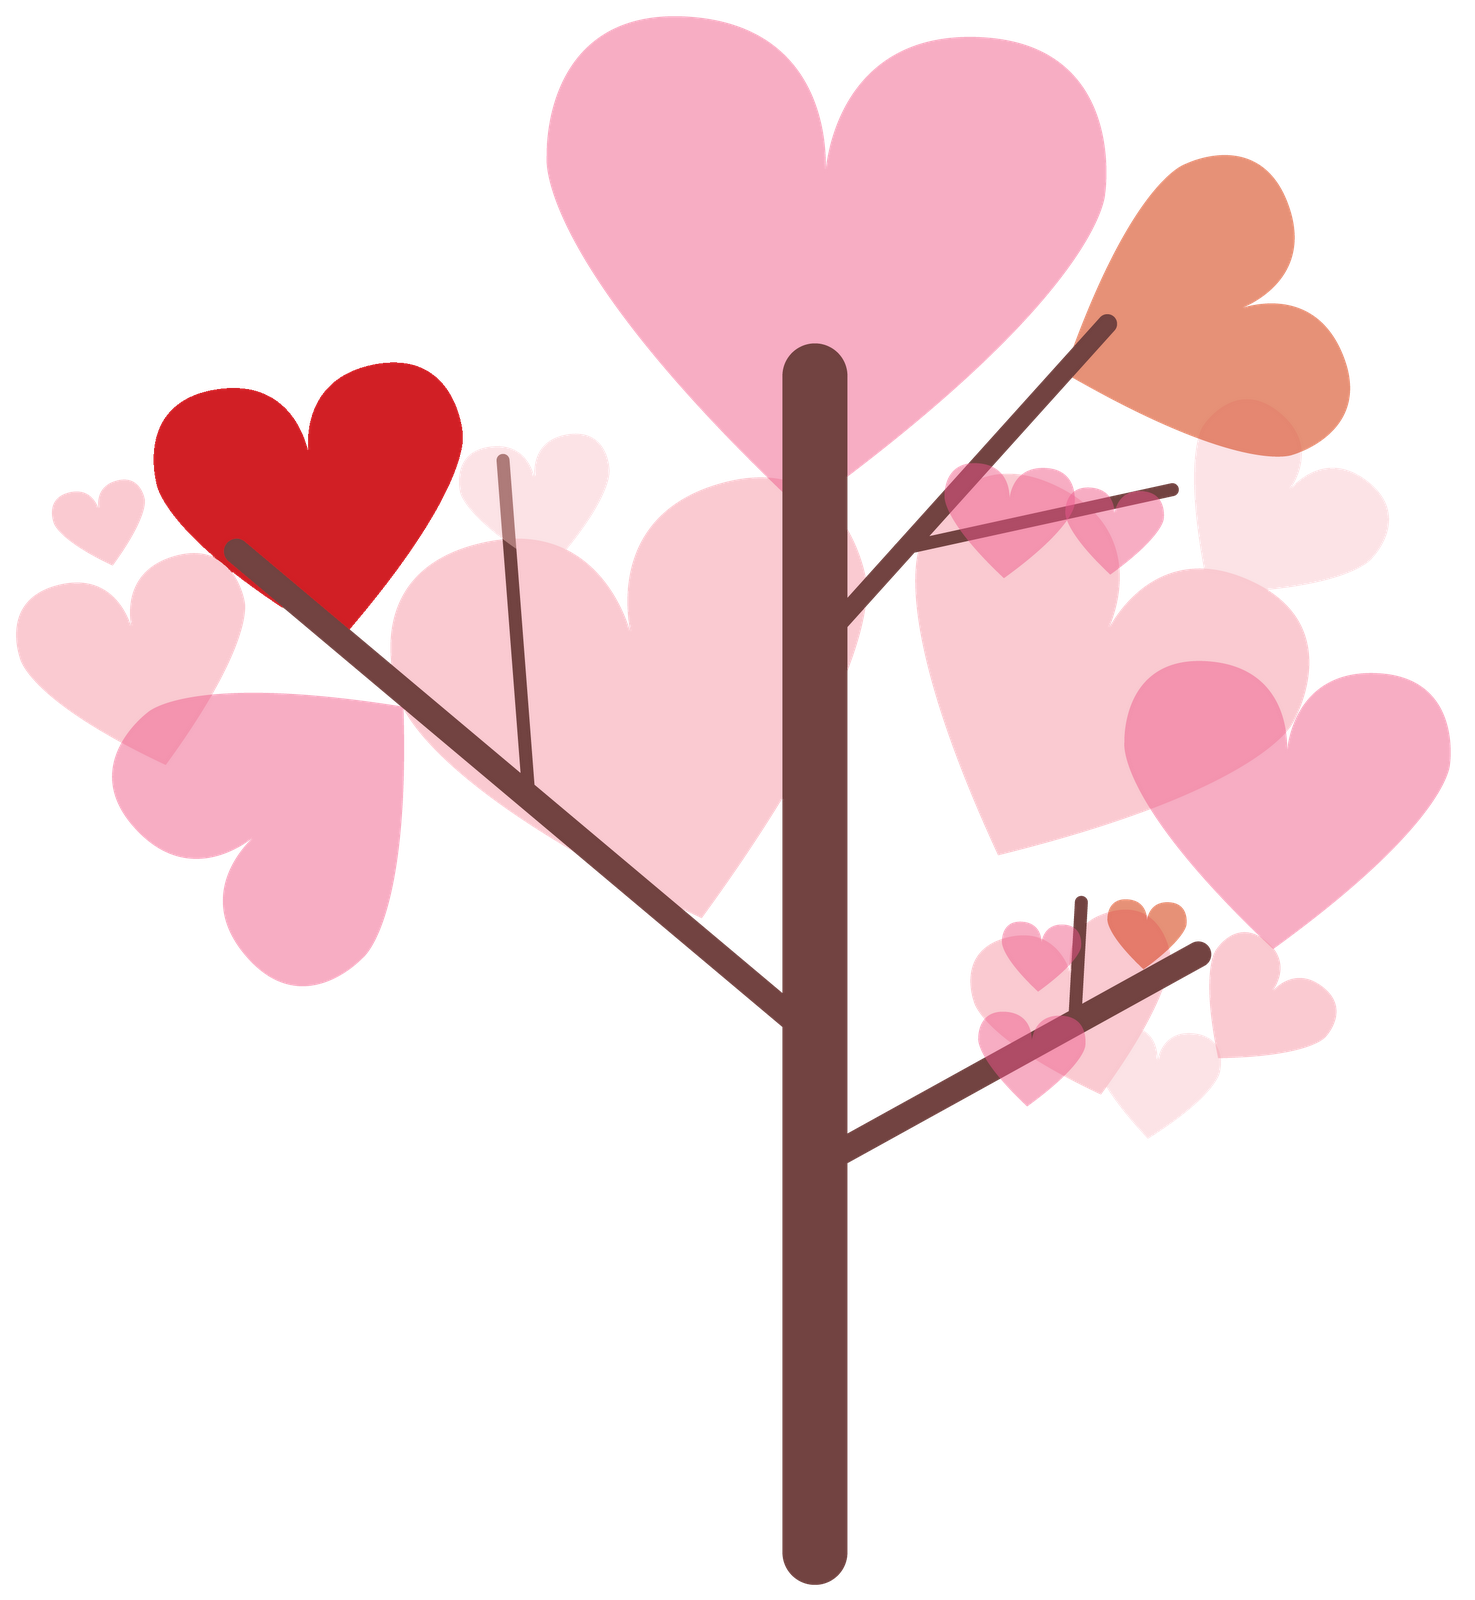 Love clipart image image free library Free Love Cliparts, Download Free Clip Art, Free Clip Art on Clipart ... image free library